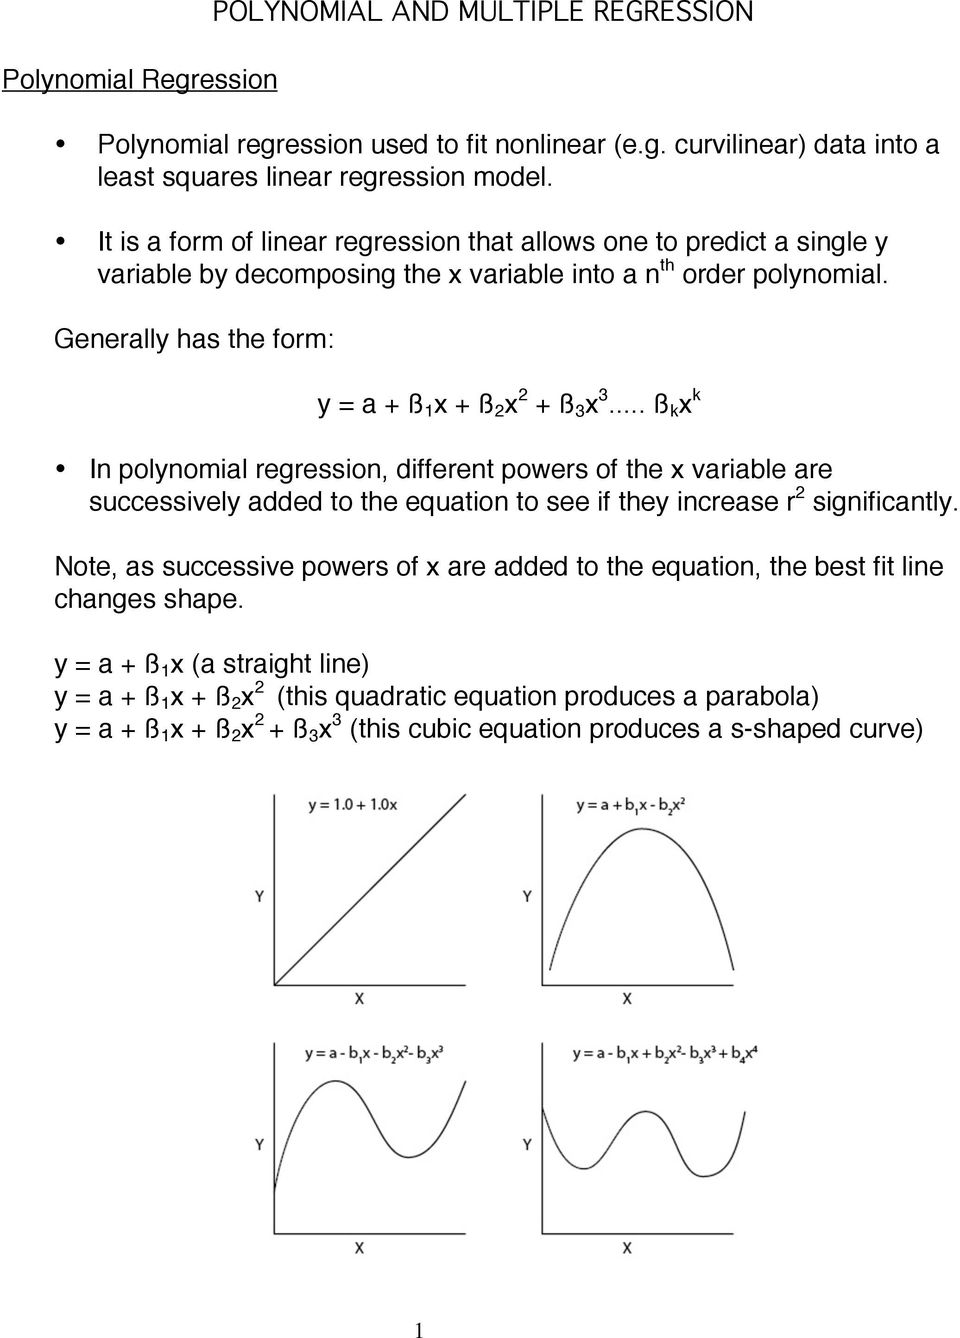 .. ß k x k In polynomial regression, different powers of the x variable are successively added to the equation to see if they increase r significantly.